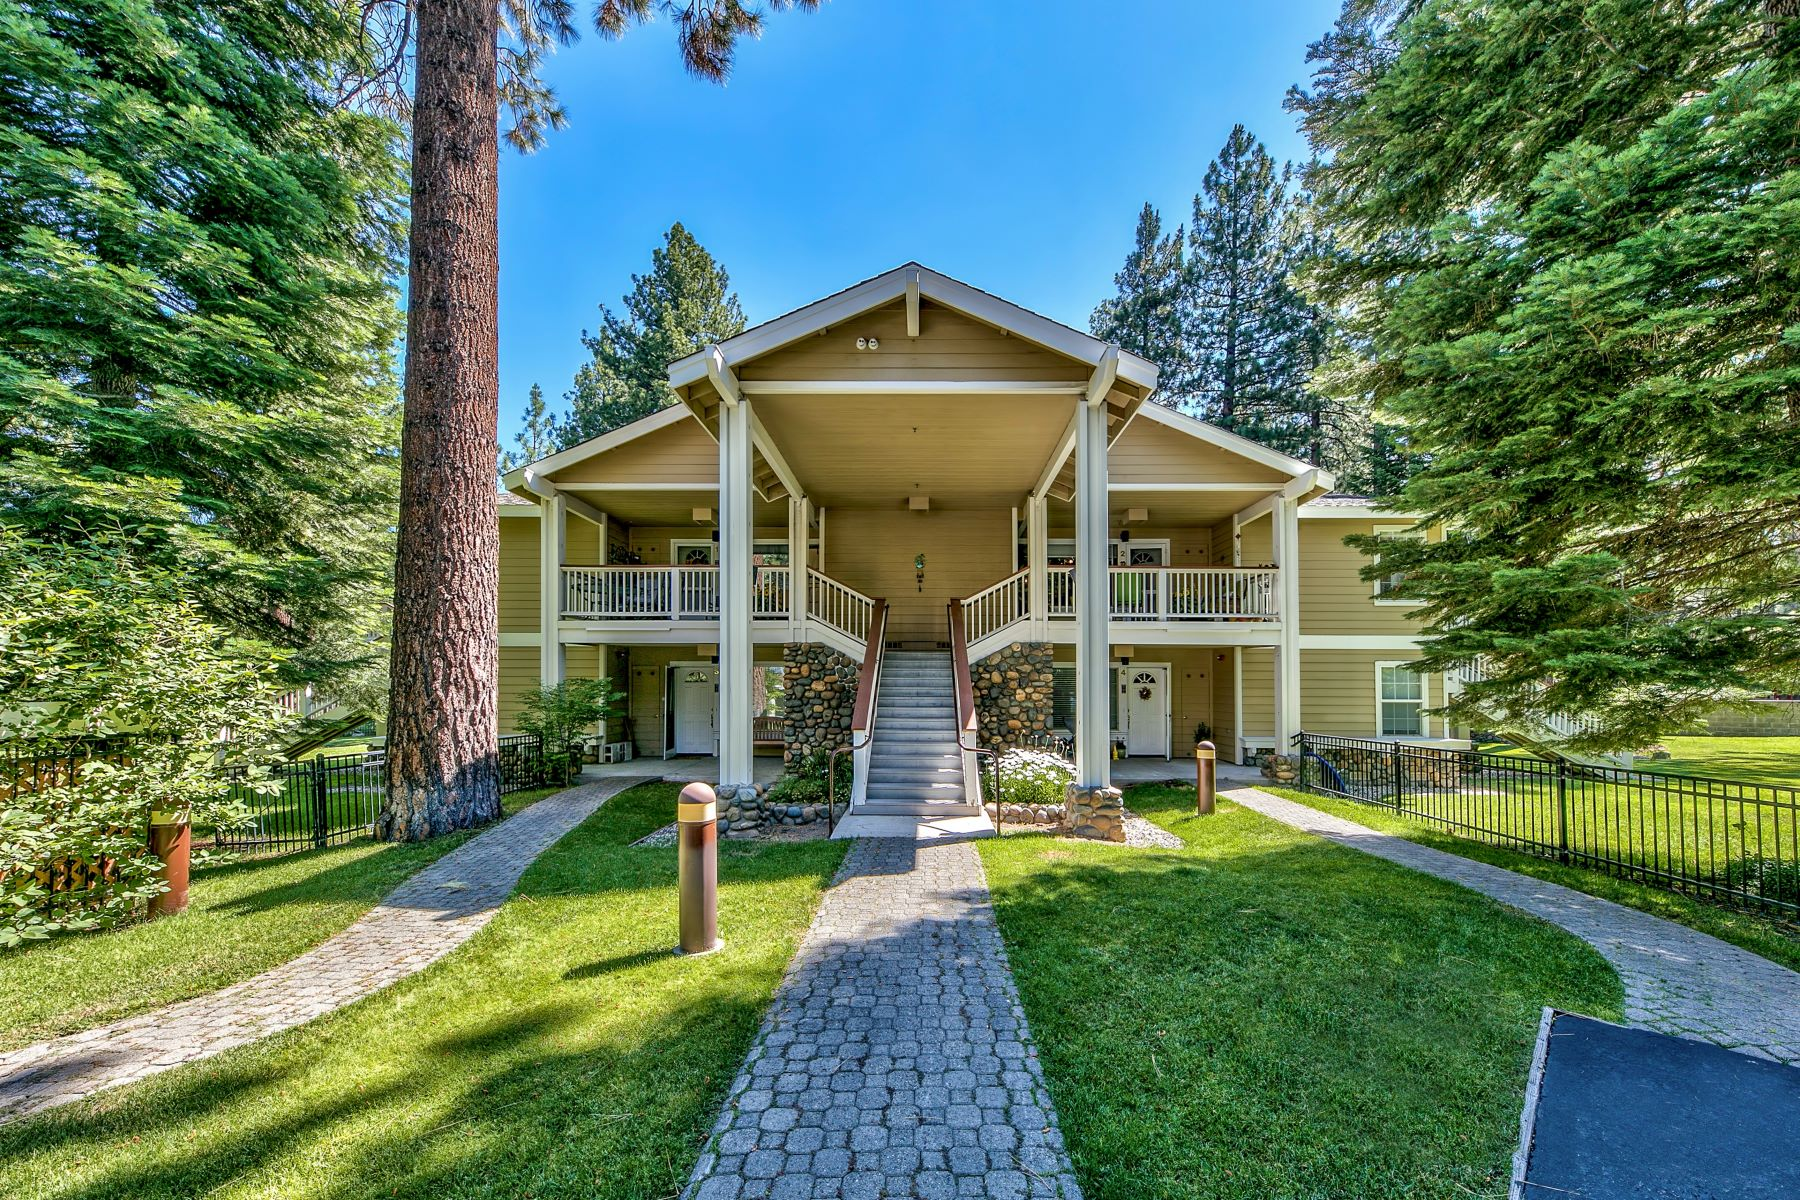 Condominiums for Active at Tahoe Island Condo 681 Eloise Ave #2 South Lake Tahoe, California 96150 United States